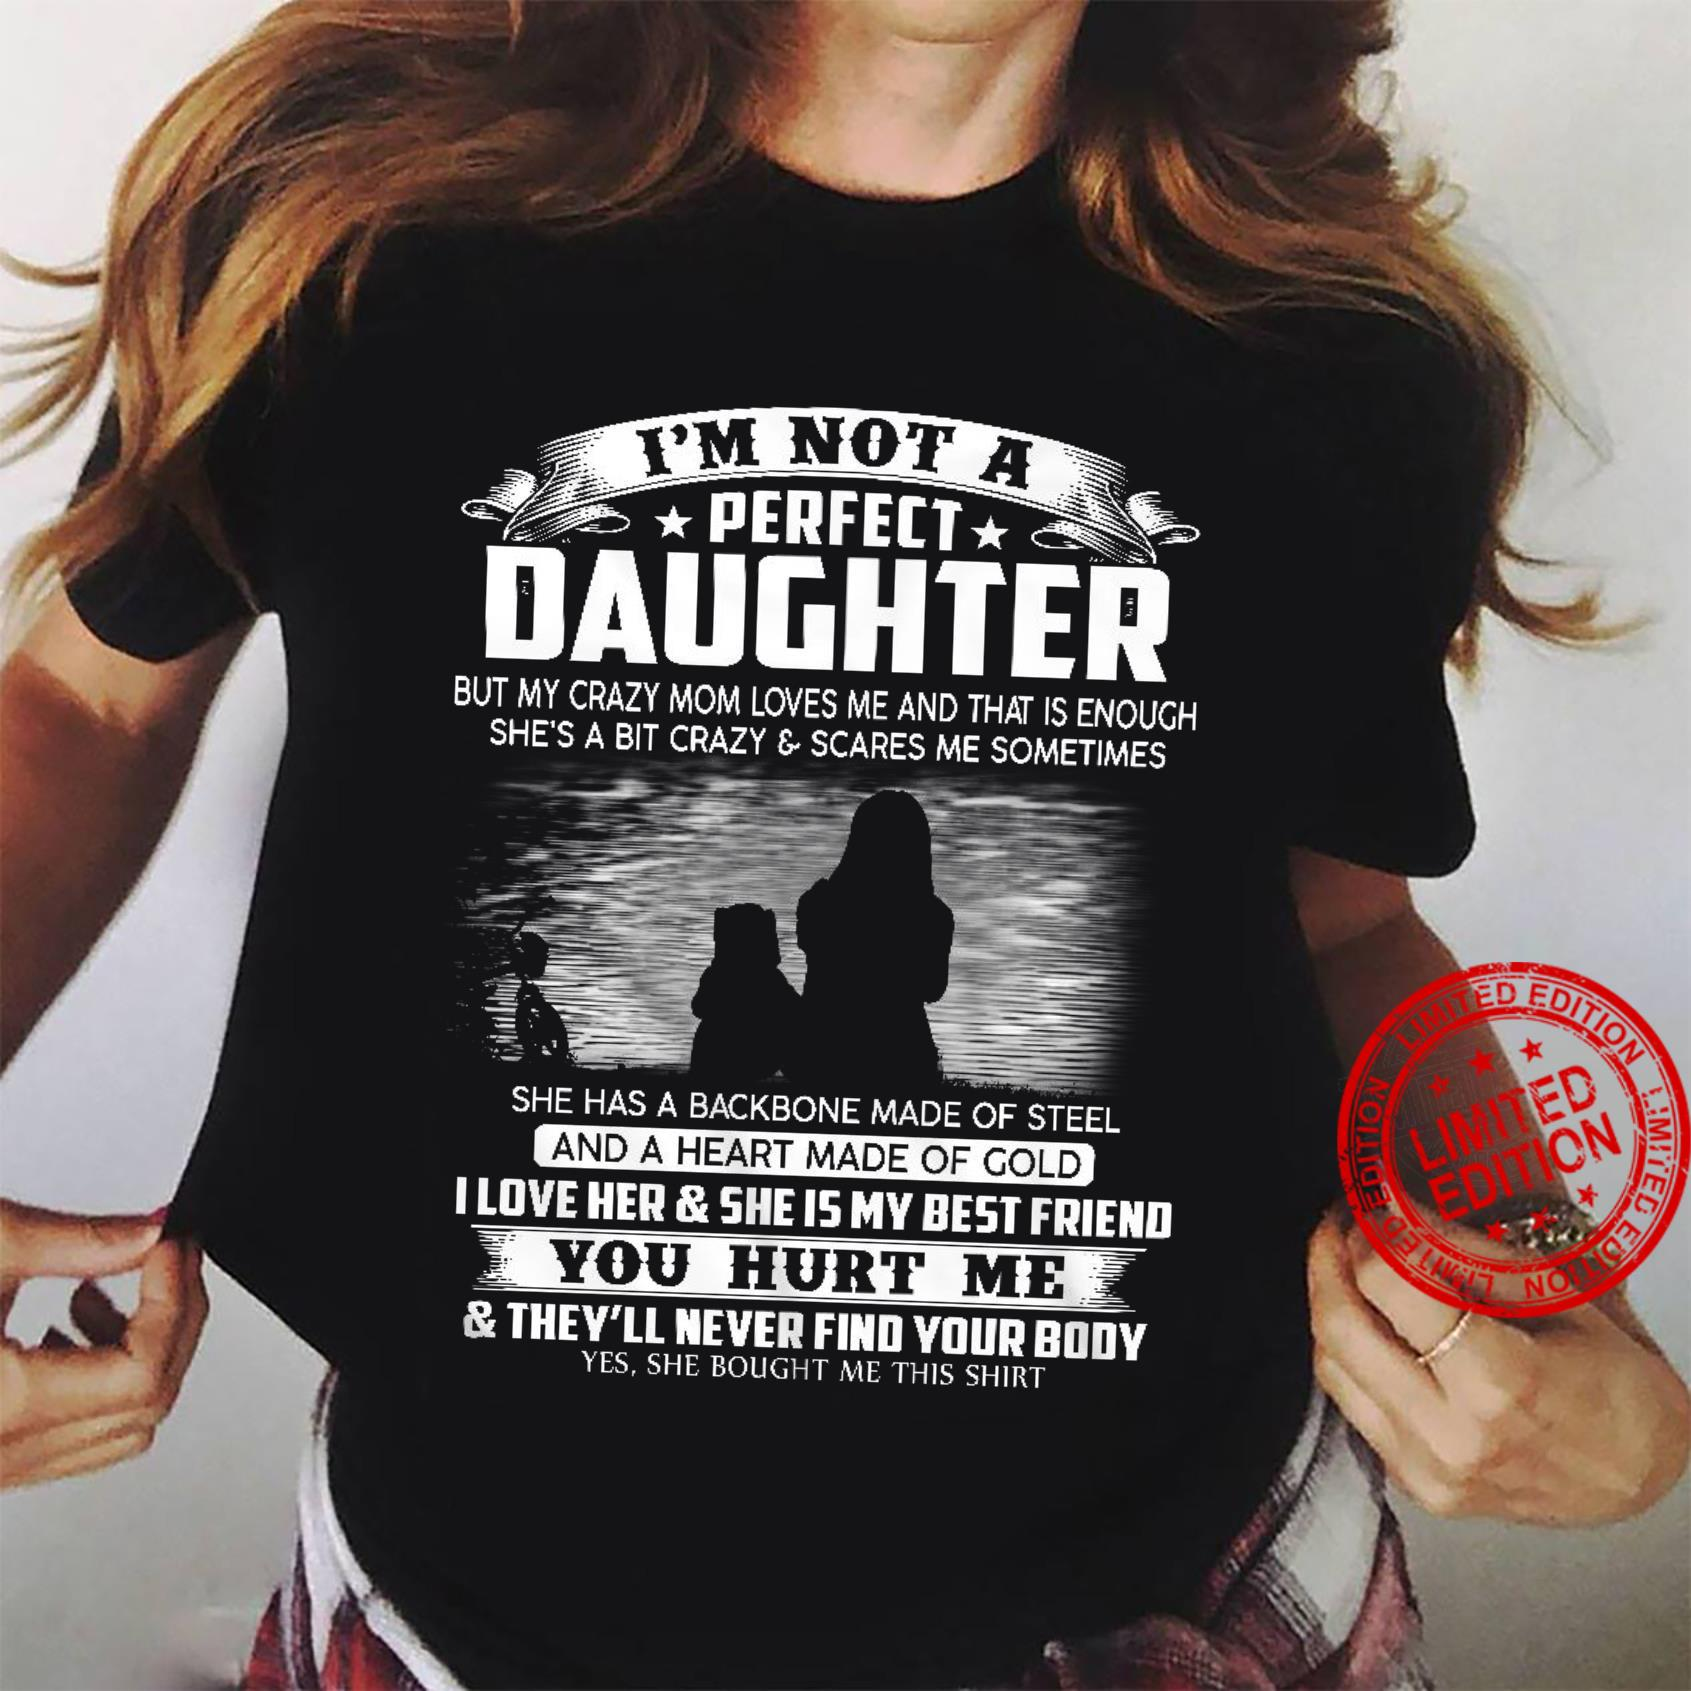 I'm Not A Perfect Daughter But My Crazy Mom Loves Me And That Is Enough She's A Bit Crazy Scares Me Some Things She Has A Backbone Made Of Steel I Love Her She Is My Best Friend Shirt ladies tee